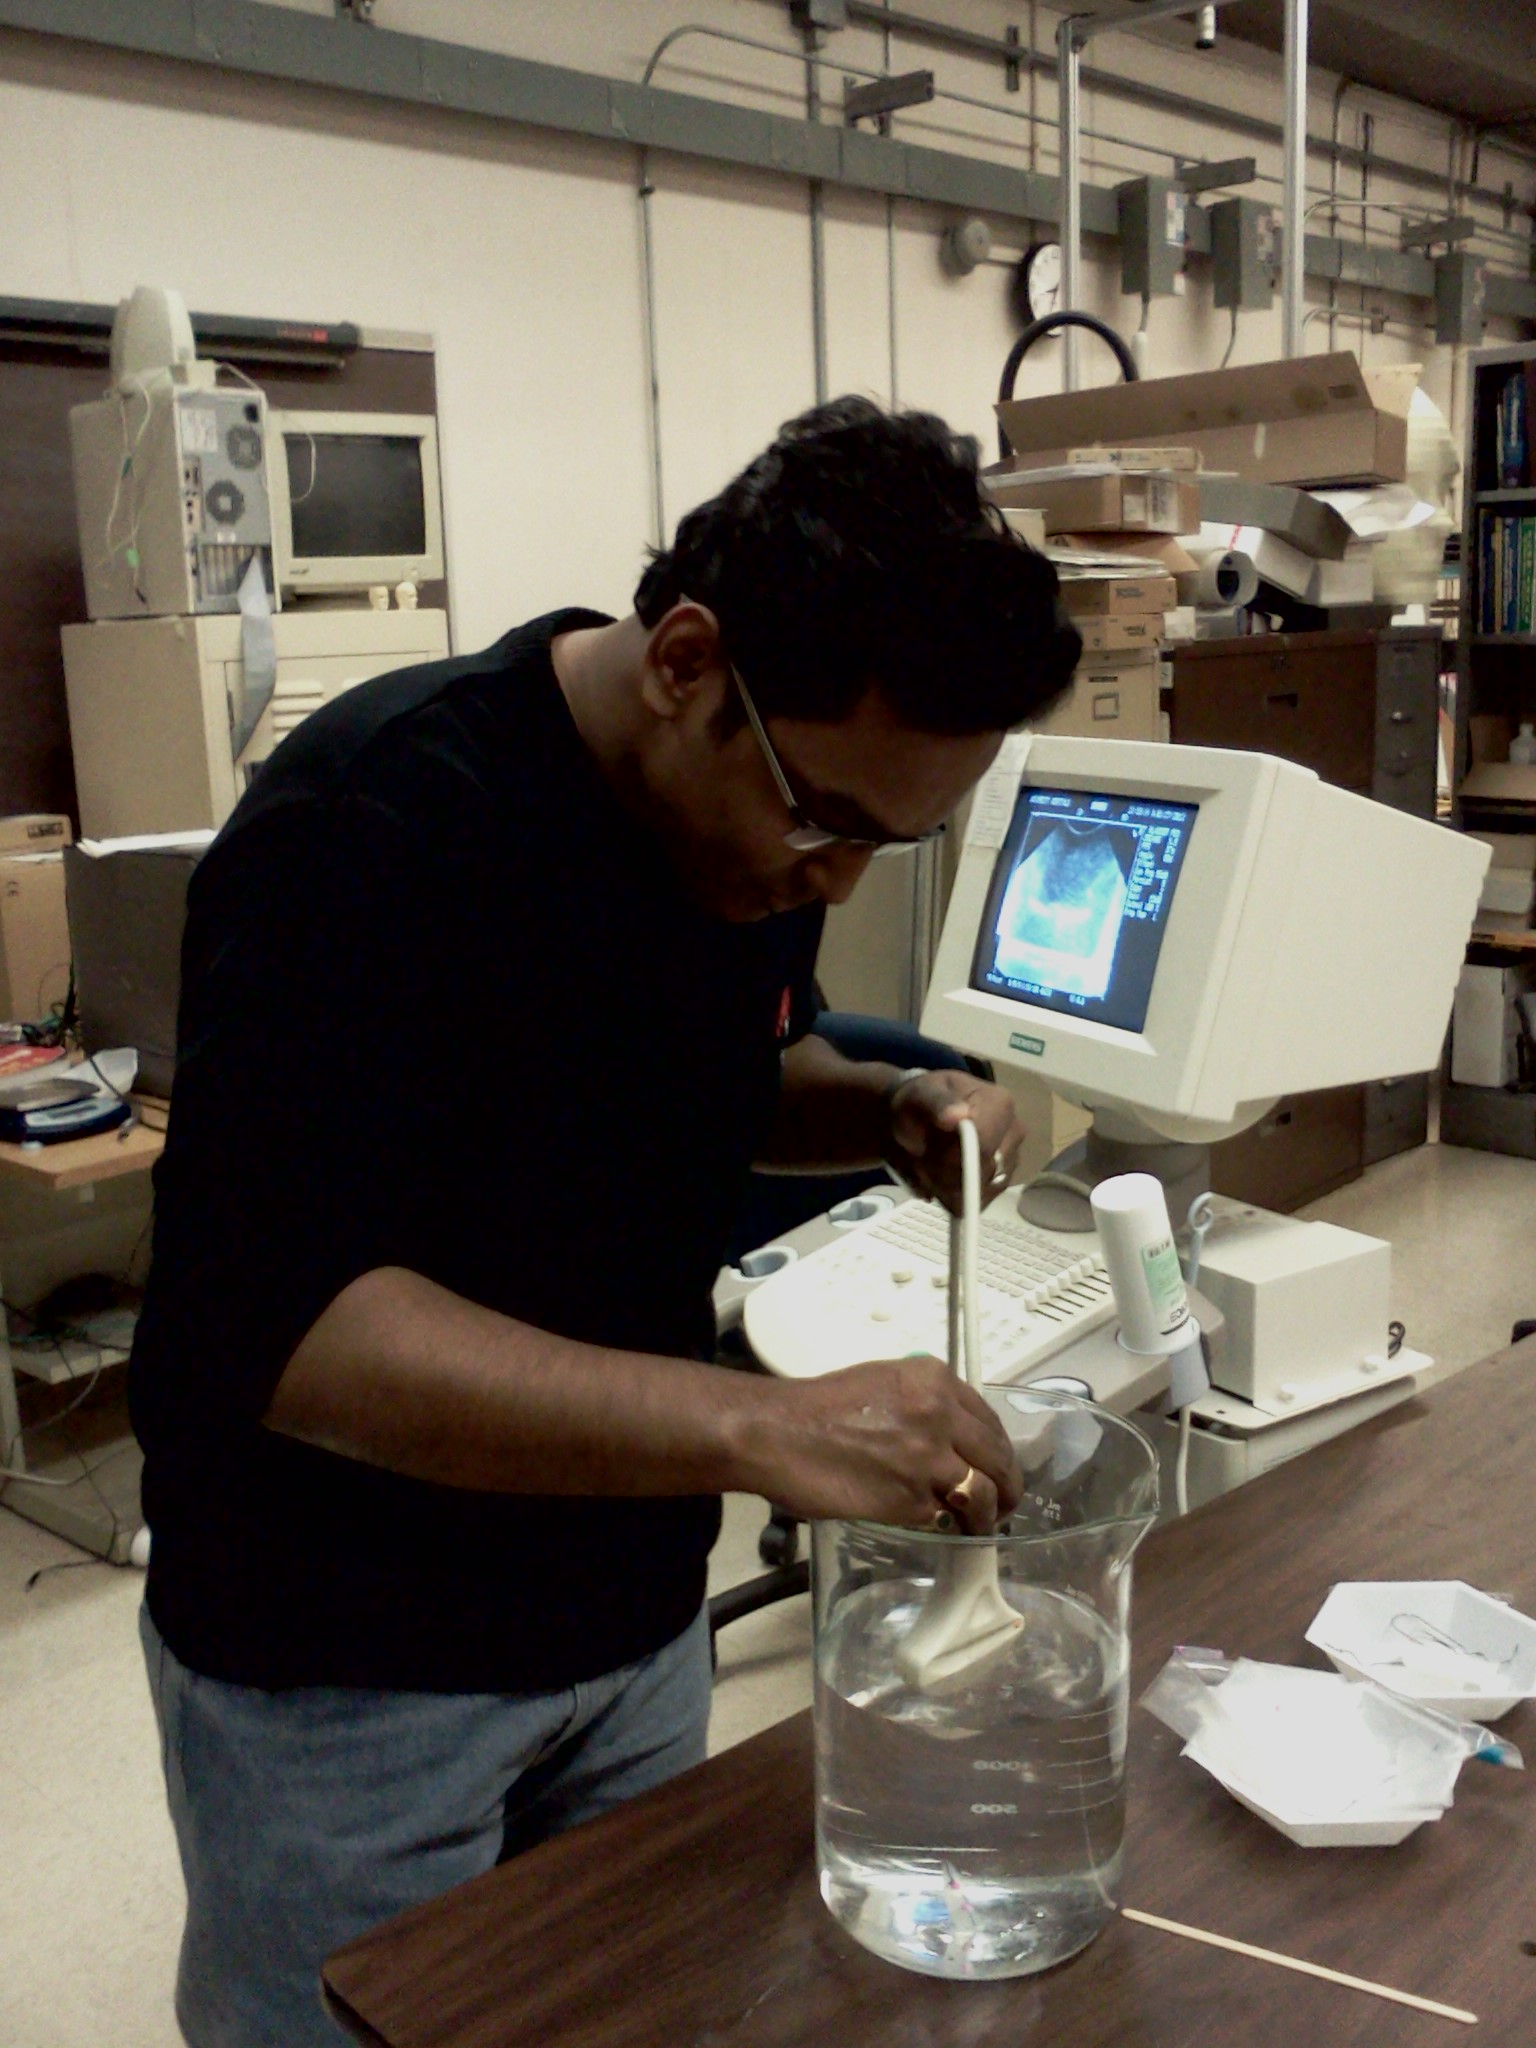 Abhishek Basak in the lab experimenting with Ultrasound machine